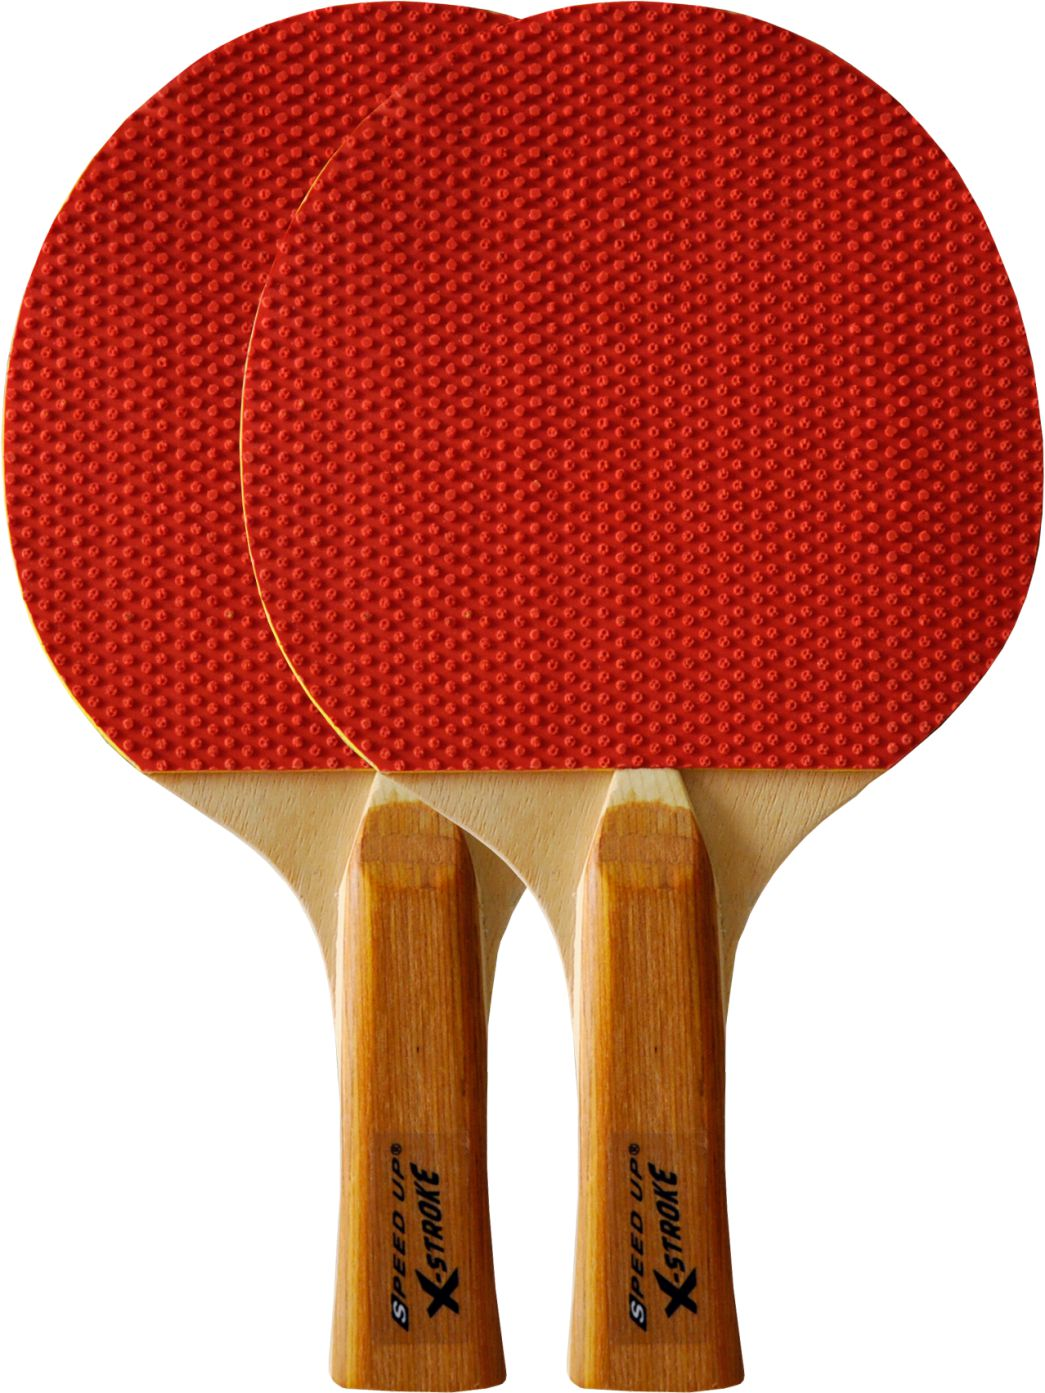 3011-D 2PPCS table tennis bats